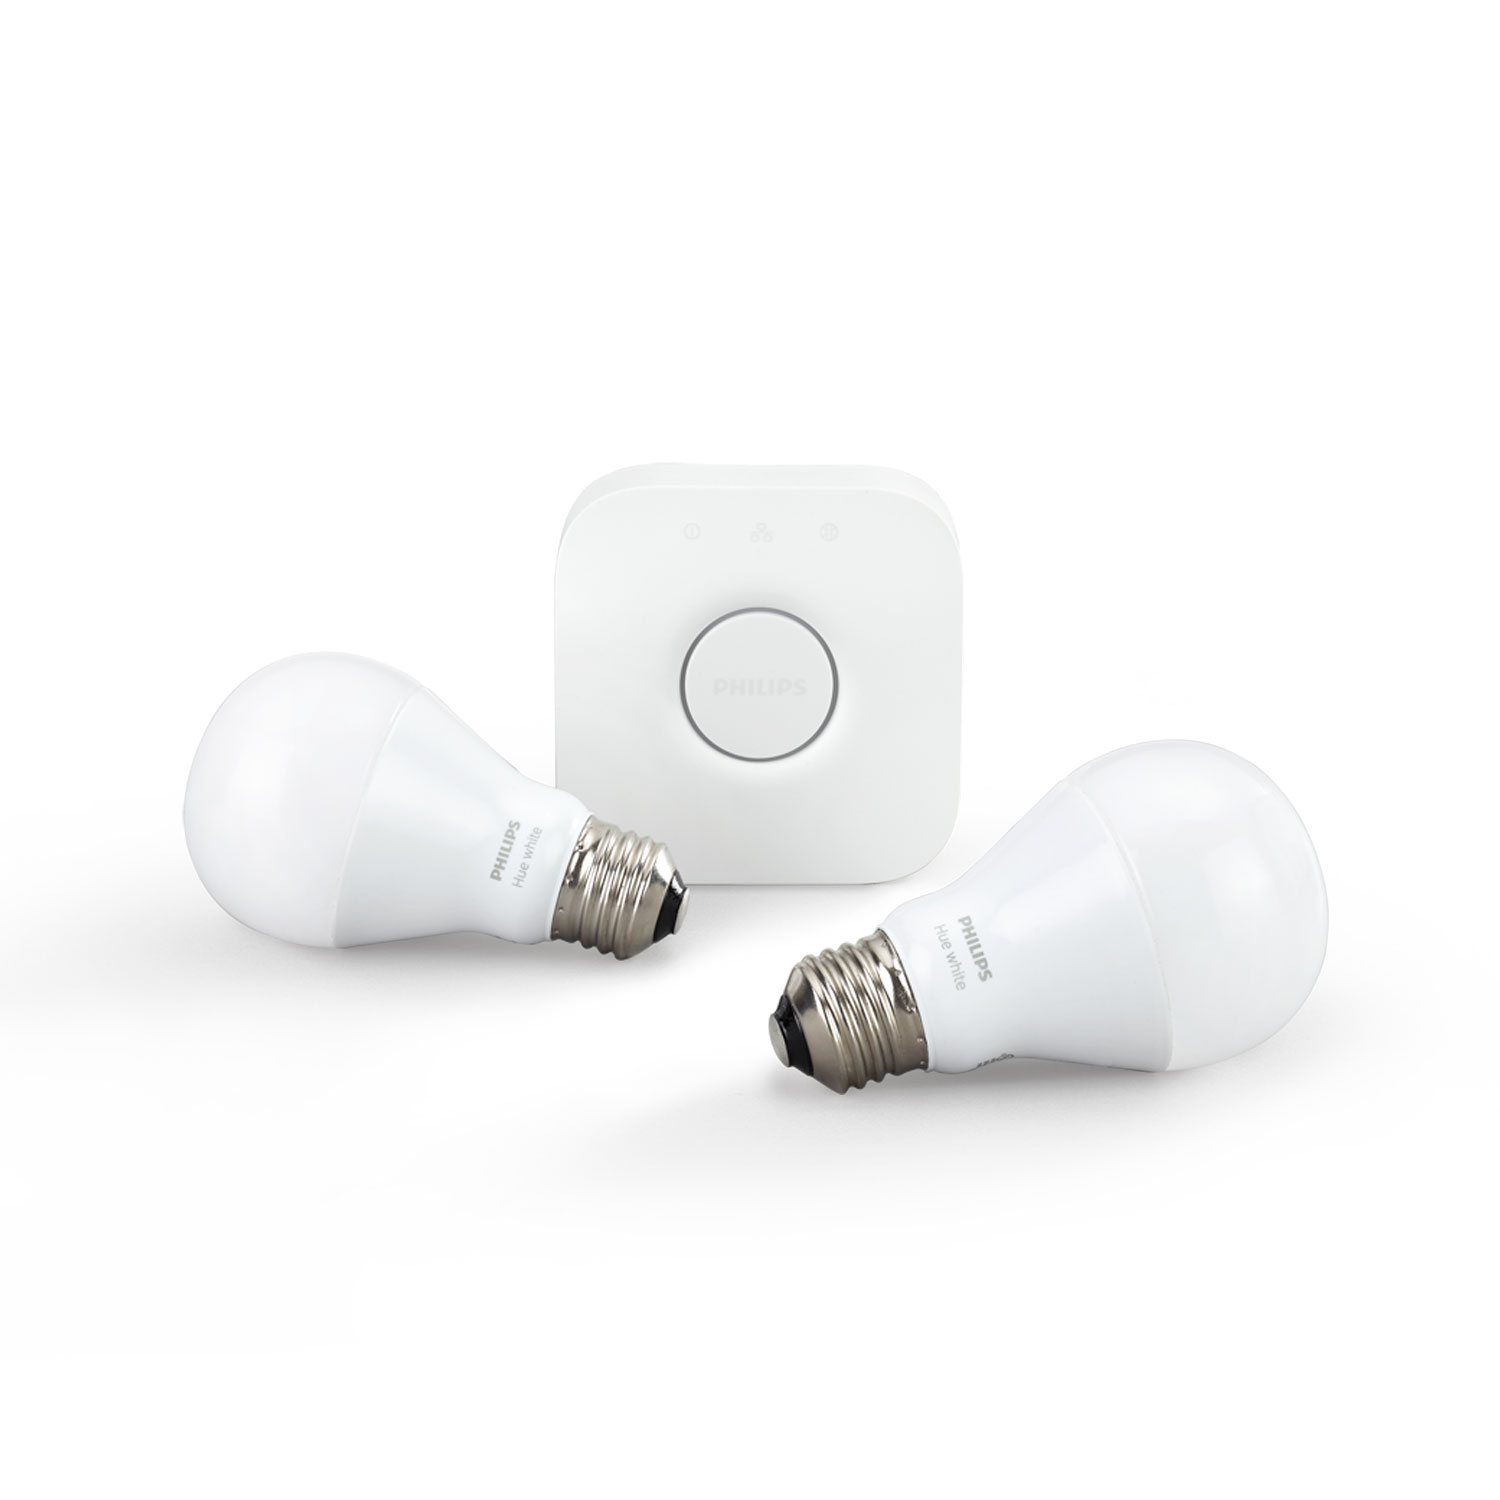 philips hue white kit de d marrage e27 ampoule connect e philips sur. Black Bedroom Furniture Sets. Home Design Ideas